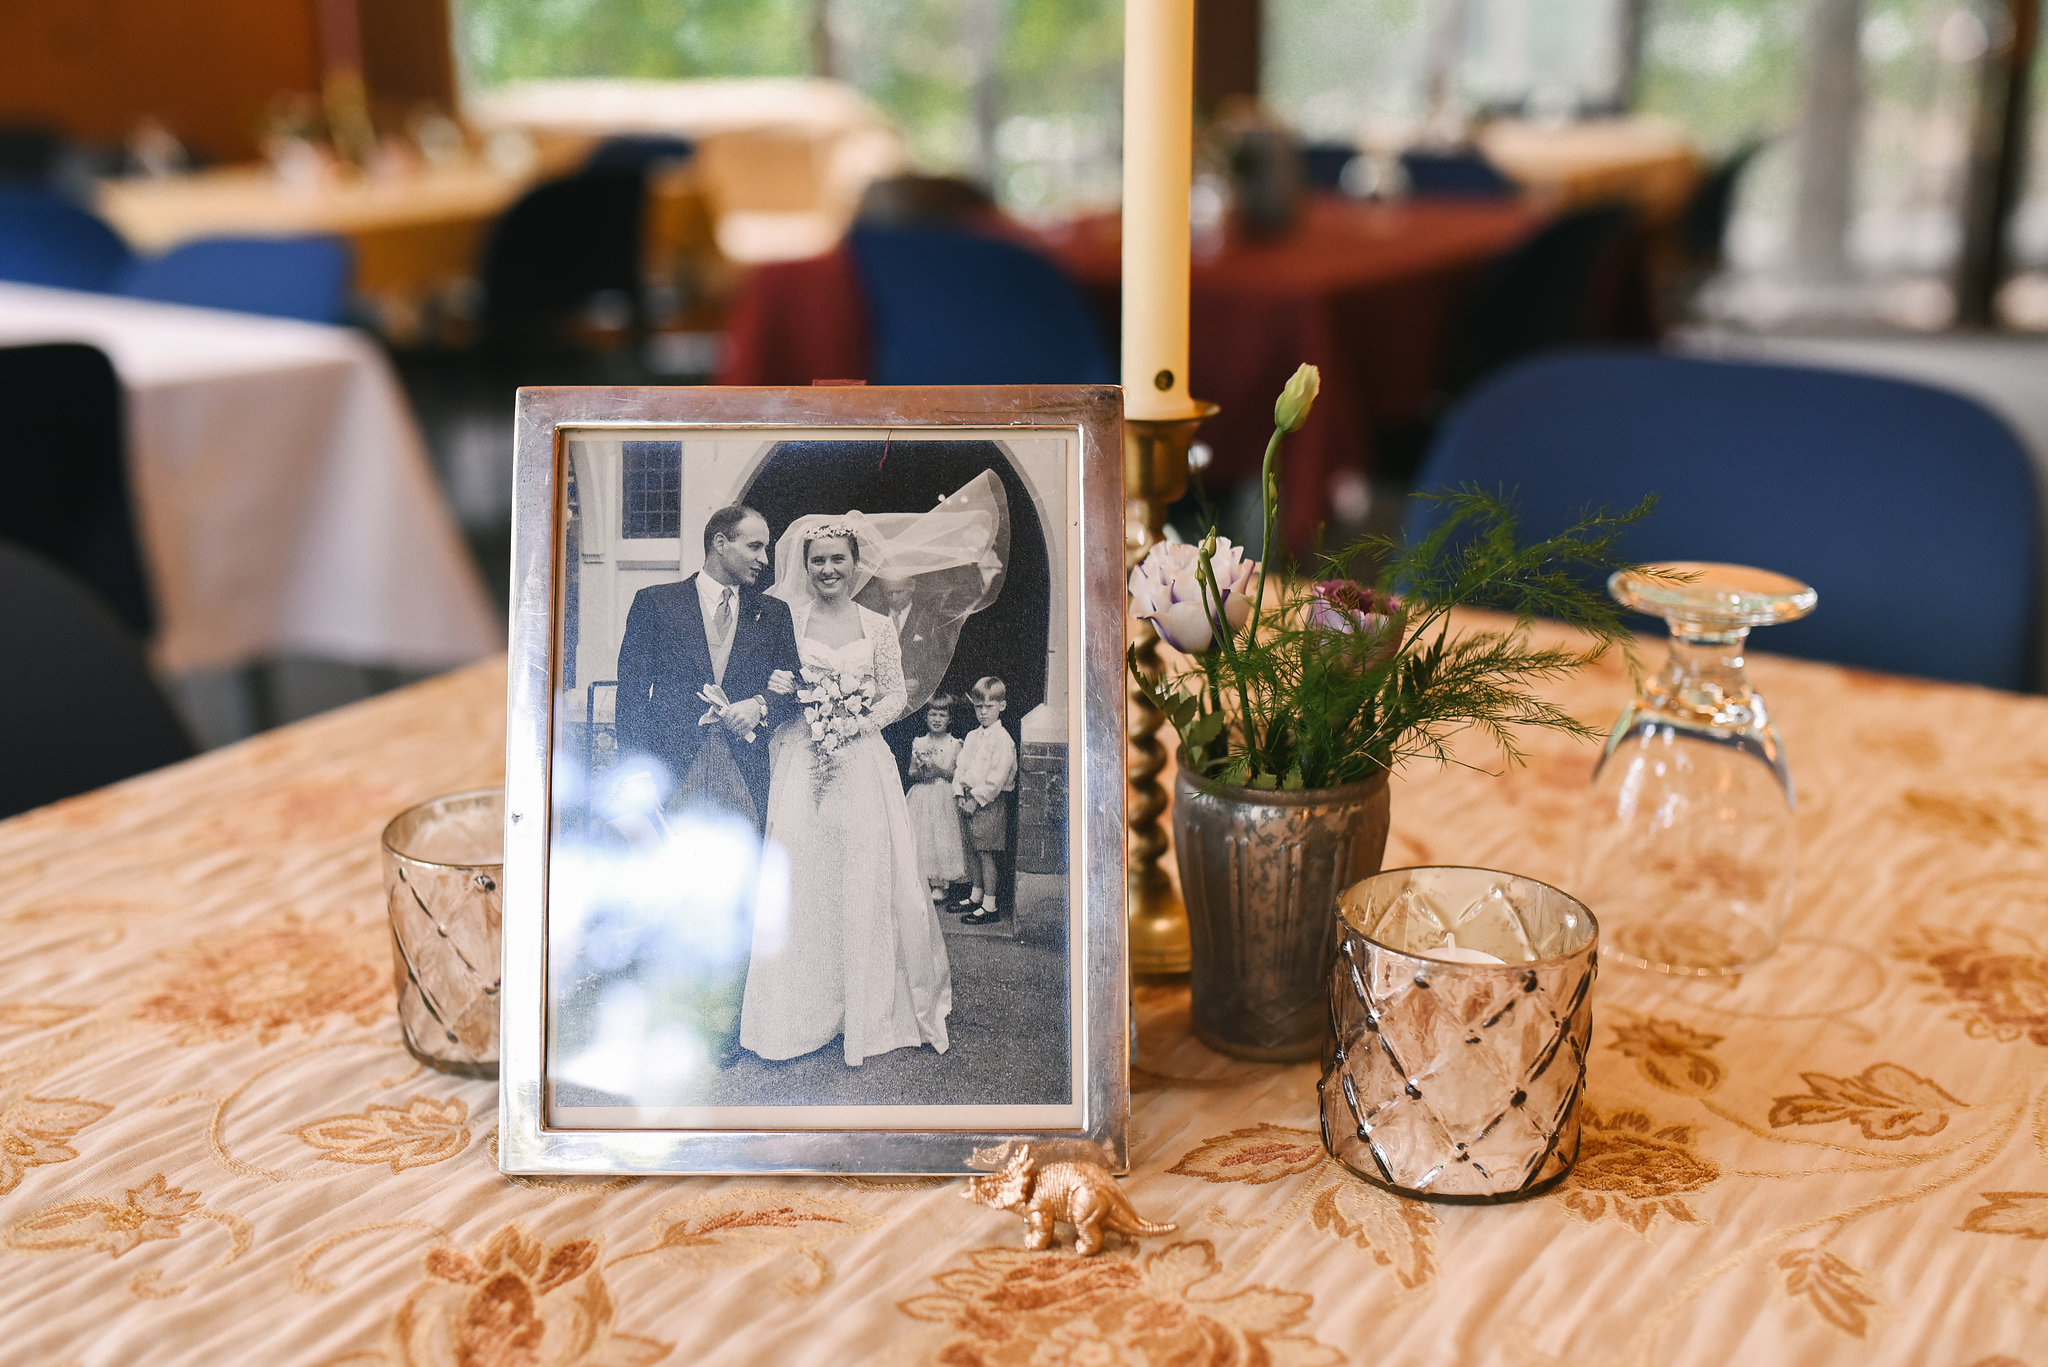 Vintage, DIY, Rustic, Germantown, Baltimore Wedding Photographer, Alternative, Casual, Outdoor Wedding, Church Wedding, Whimsical, Campground, Handmade, Vintage Photo, Decorations, Reception